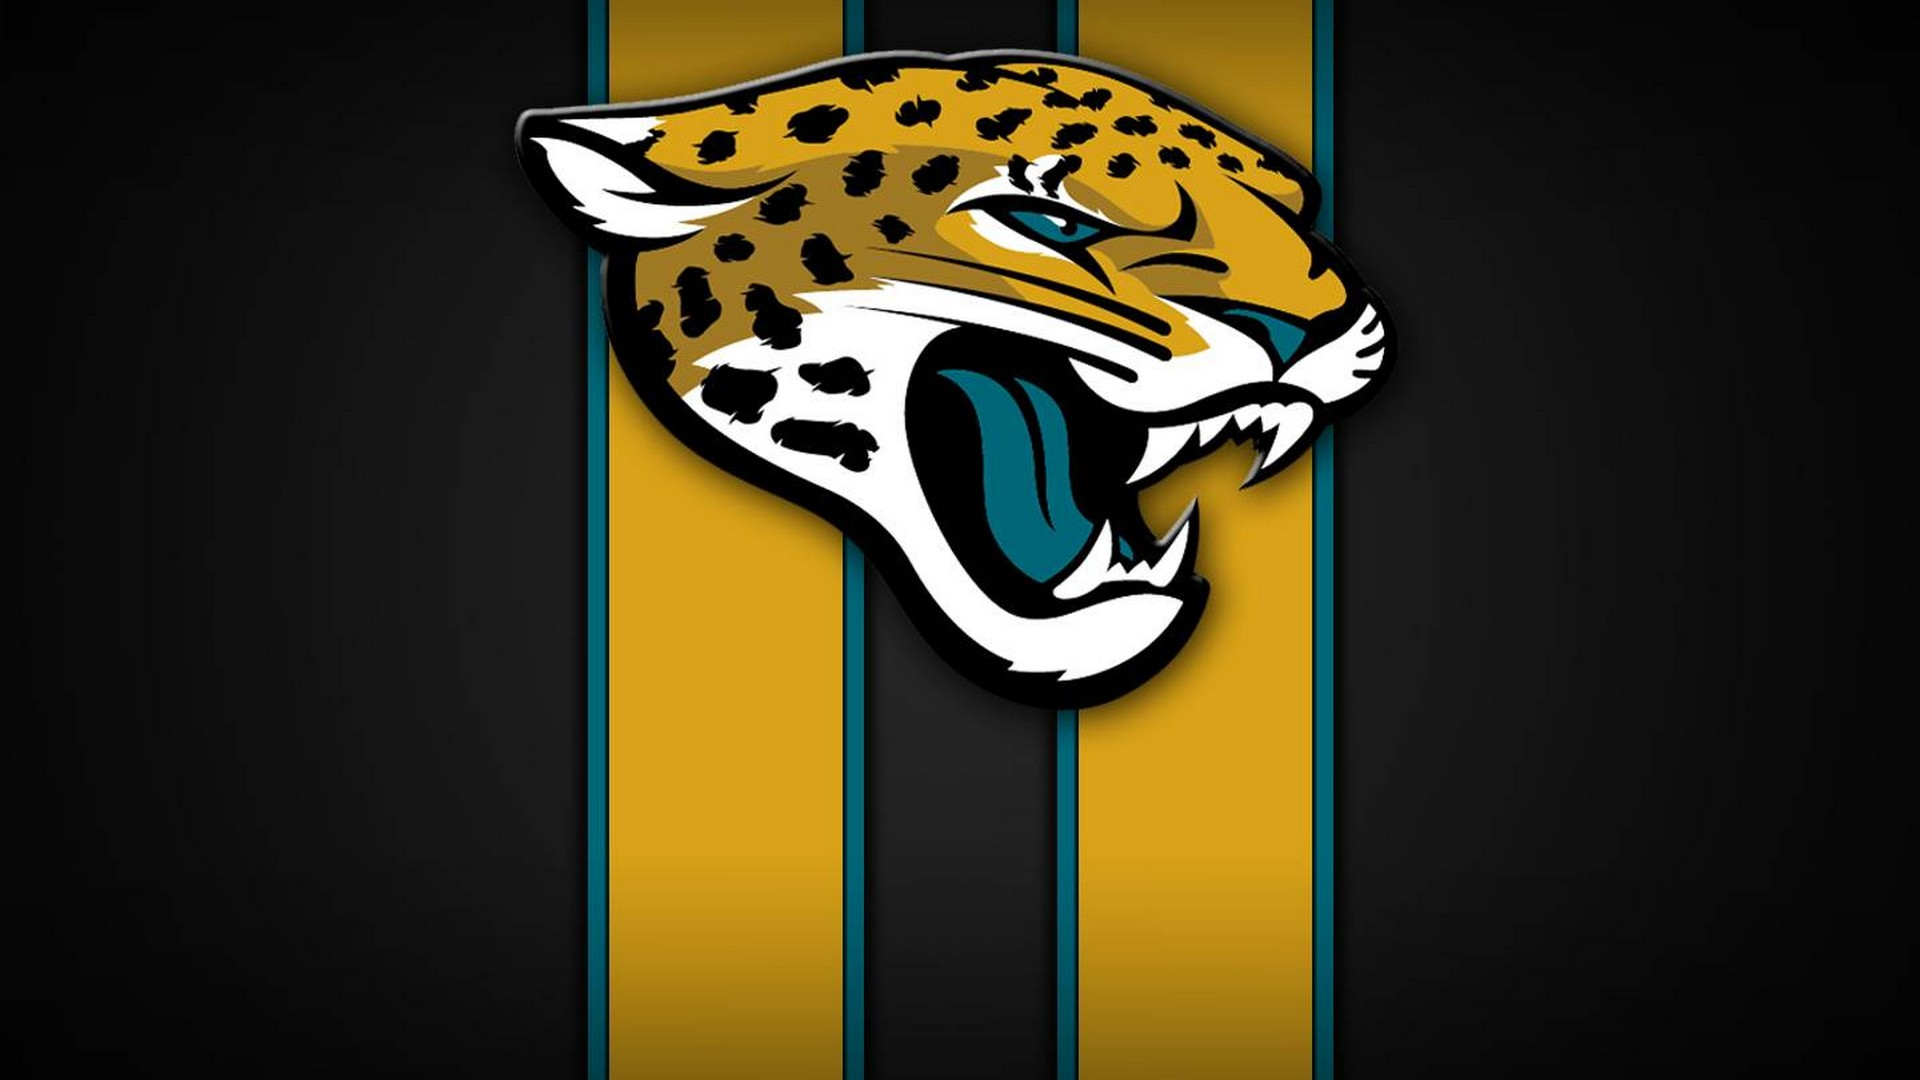 Jacksonville Jaguars For PC Wallpaper 2019 NFL Football Wallpapers 1920x1080